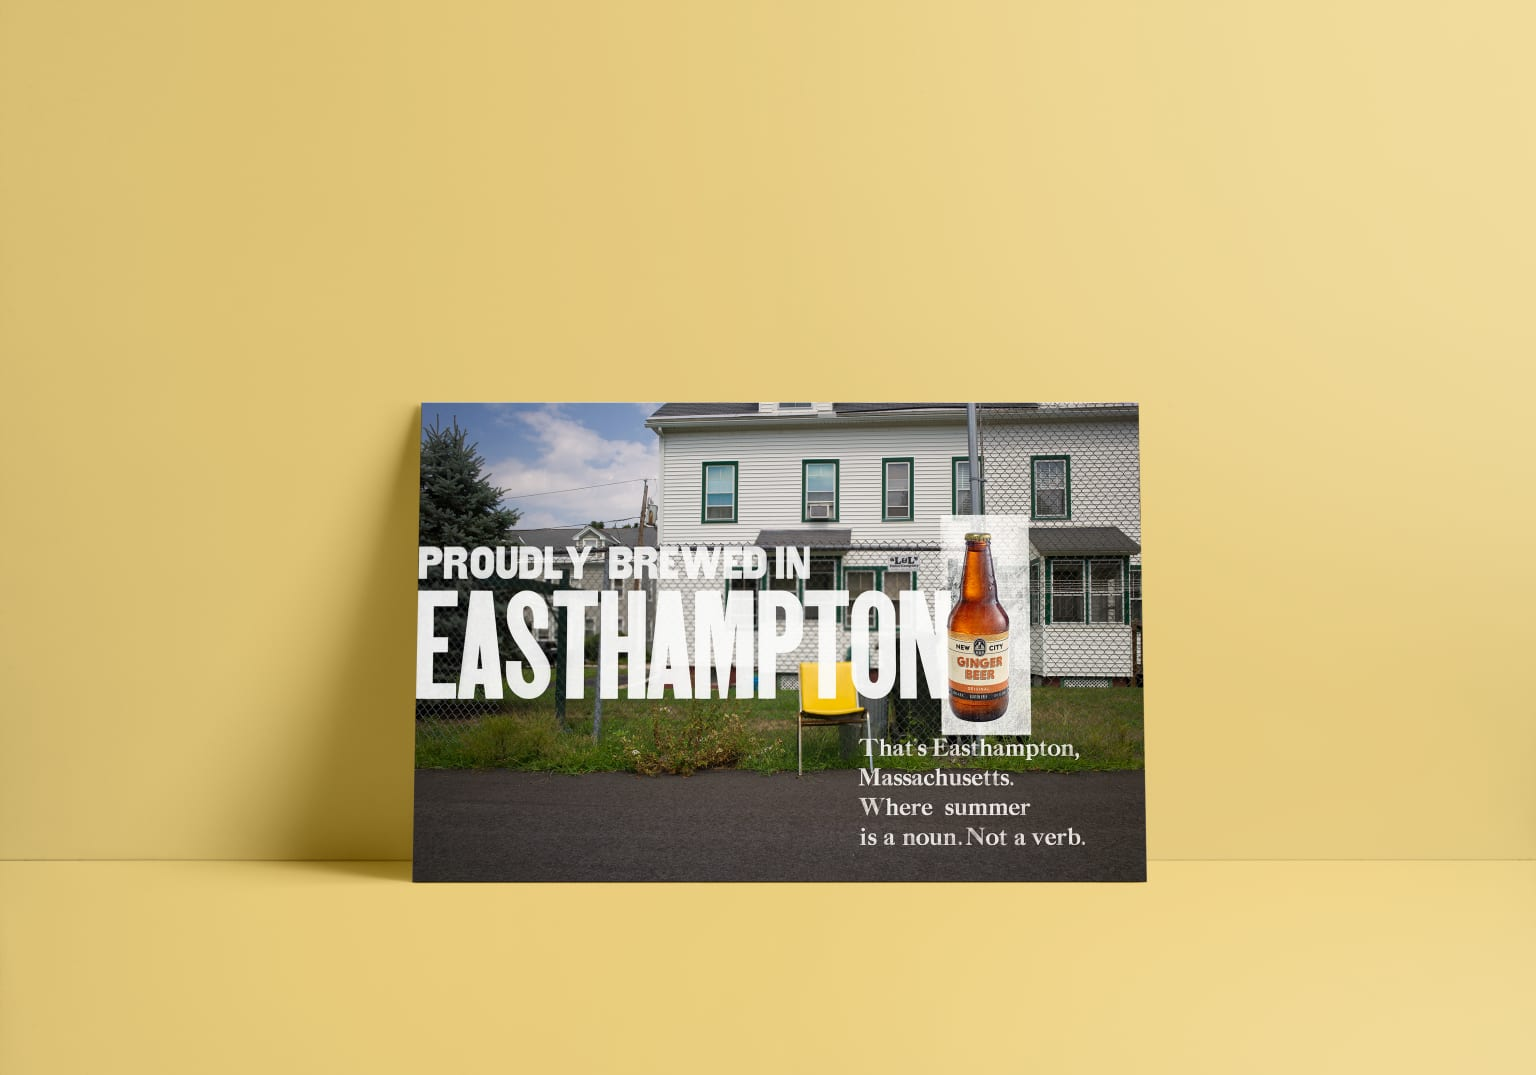 New City Brewery: Not That East Hampton